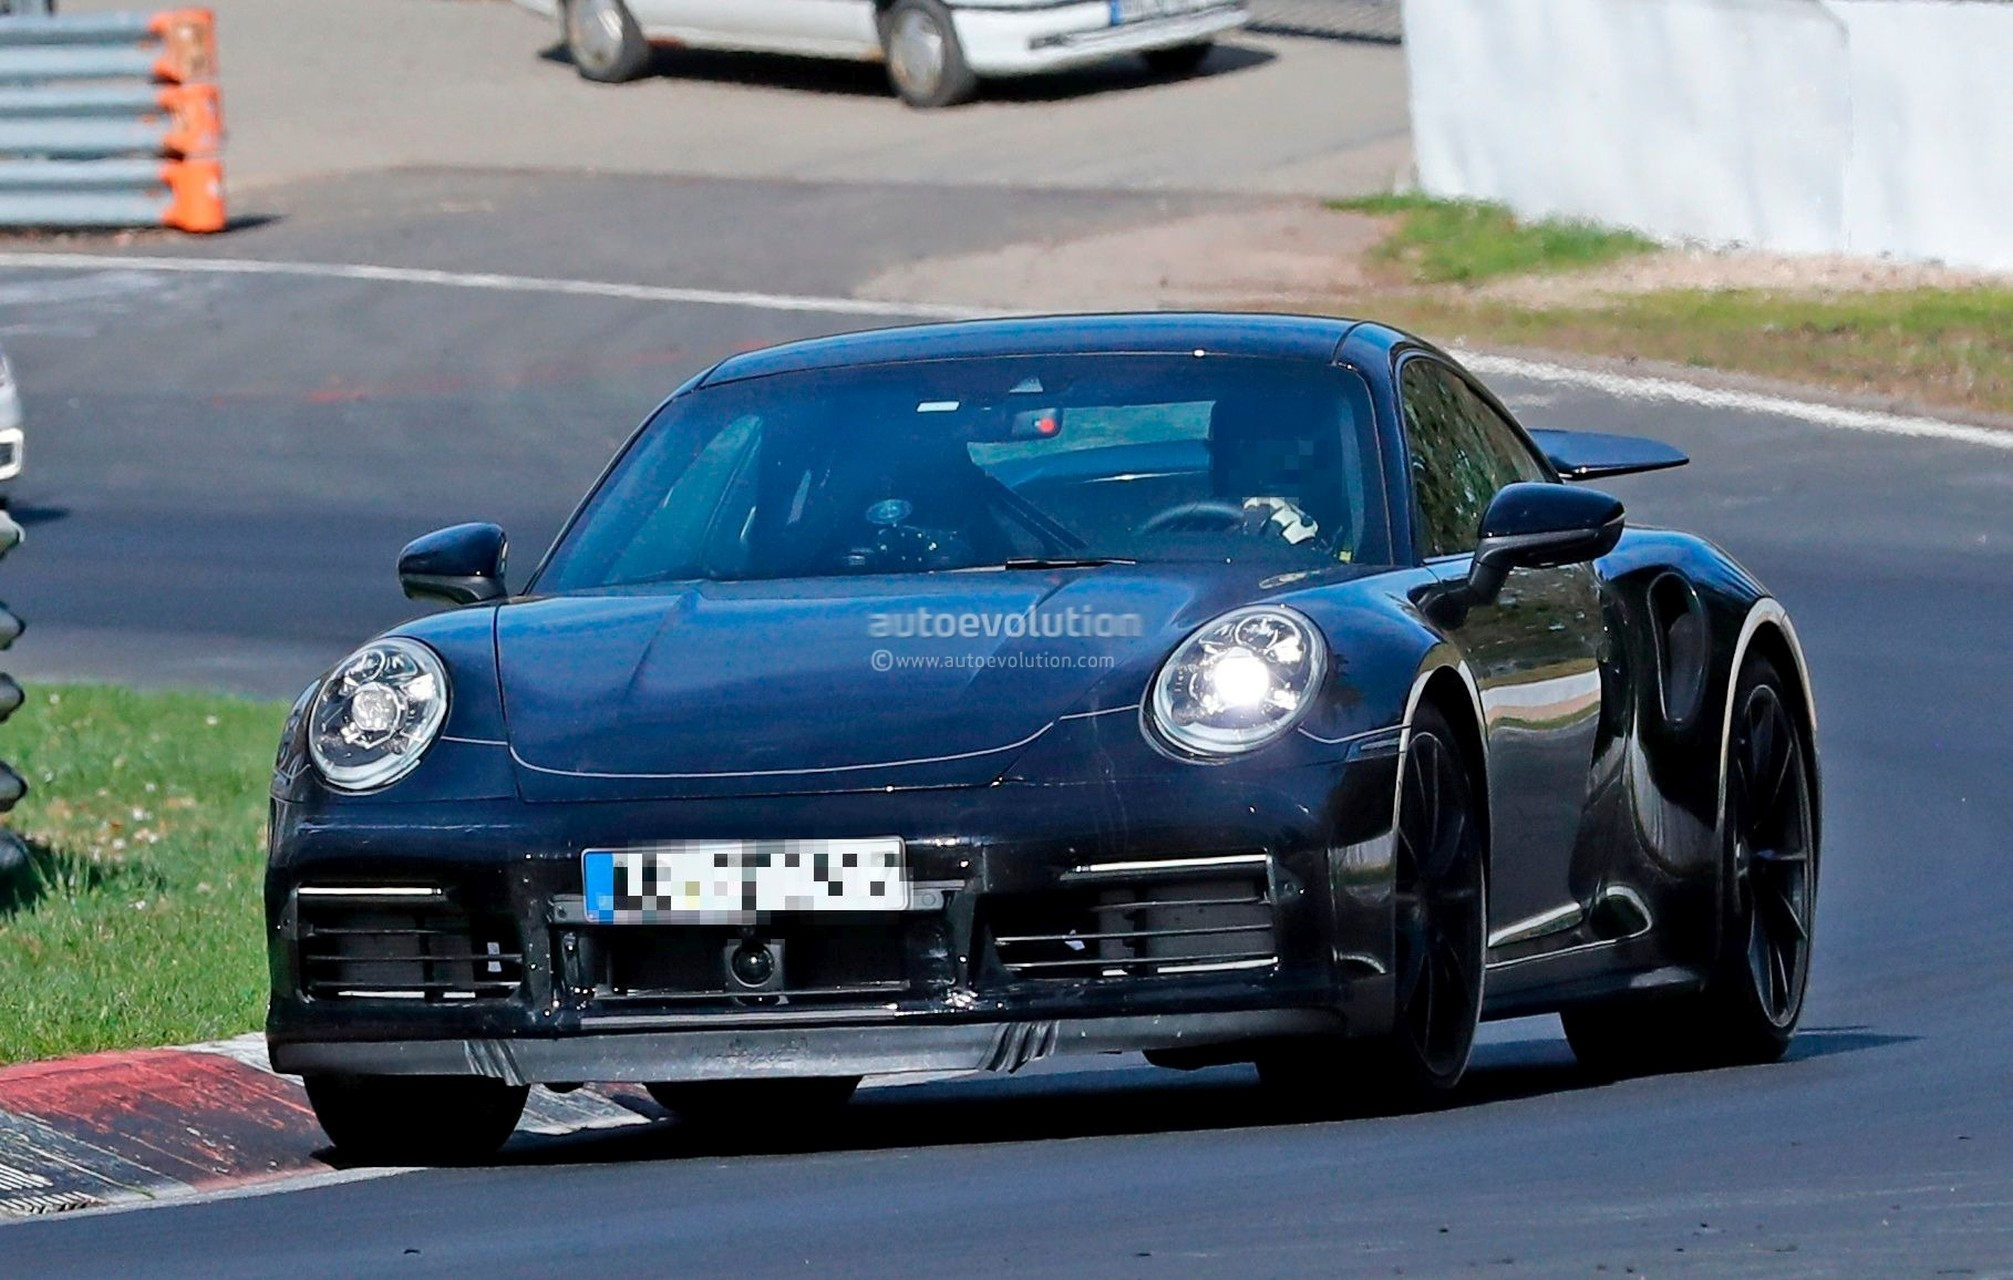 spyshots 2020 porsche 911 turbo shows new active rear wing on nurburgring autoevolution. Black Bedroom Furniture Sets. Home Design Ideas